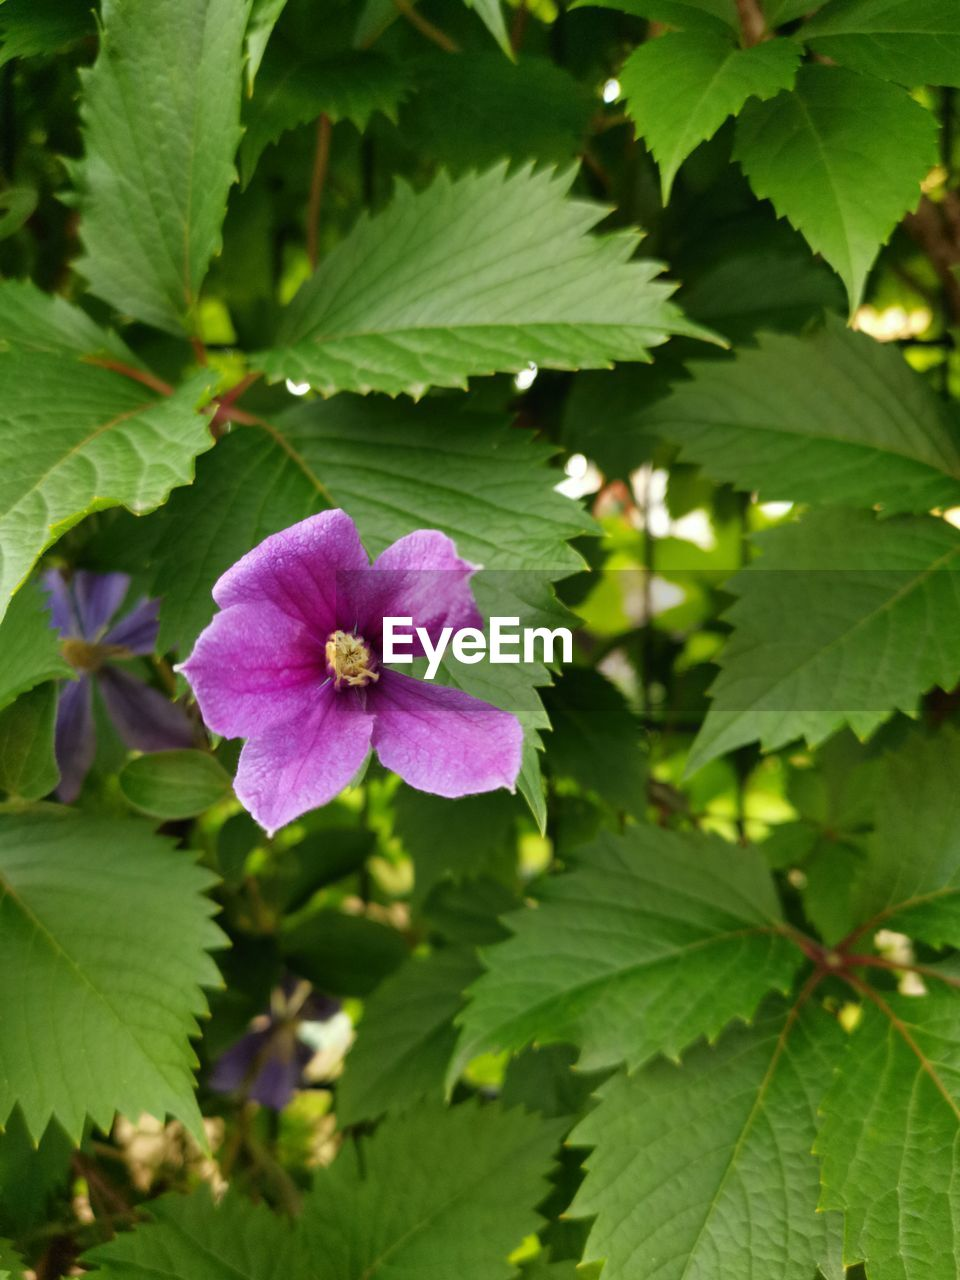 plant, flowering plant, flower, beauty in nature, freshness, growth, plant part, fragility, leaf, vulnerability, petal, flower head, close-up, inflorescence, green color, nature, pink color, no people, day, purple, outdoors